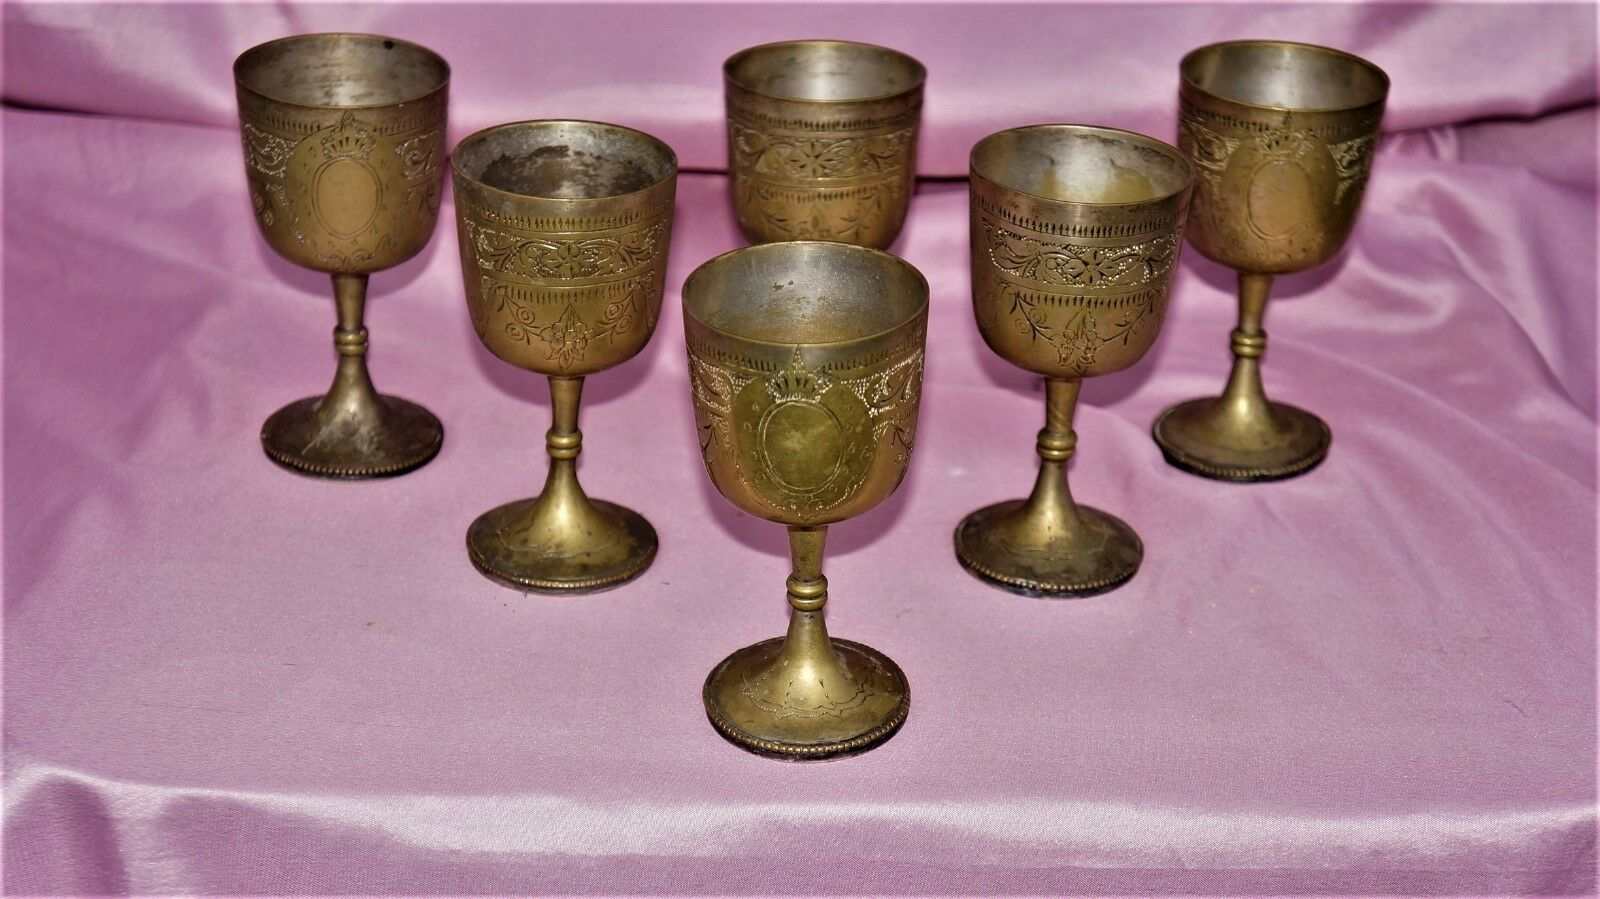 Six decorated Roman brass goblets pimp cup for a convivium wine drinking vessel